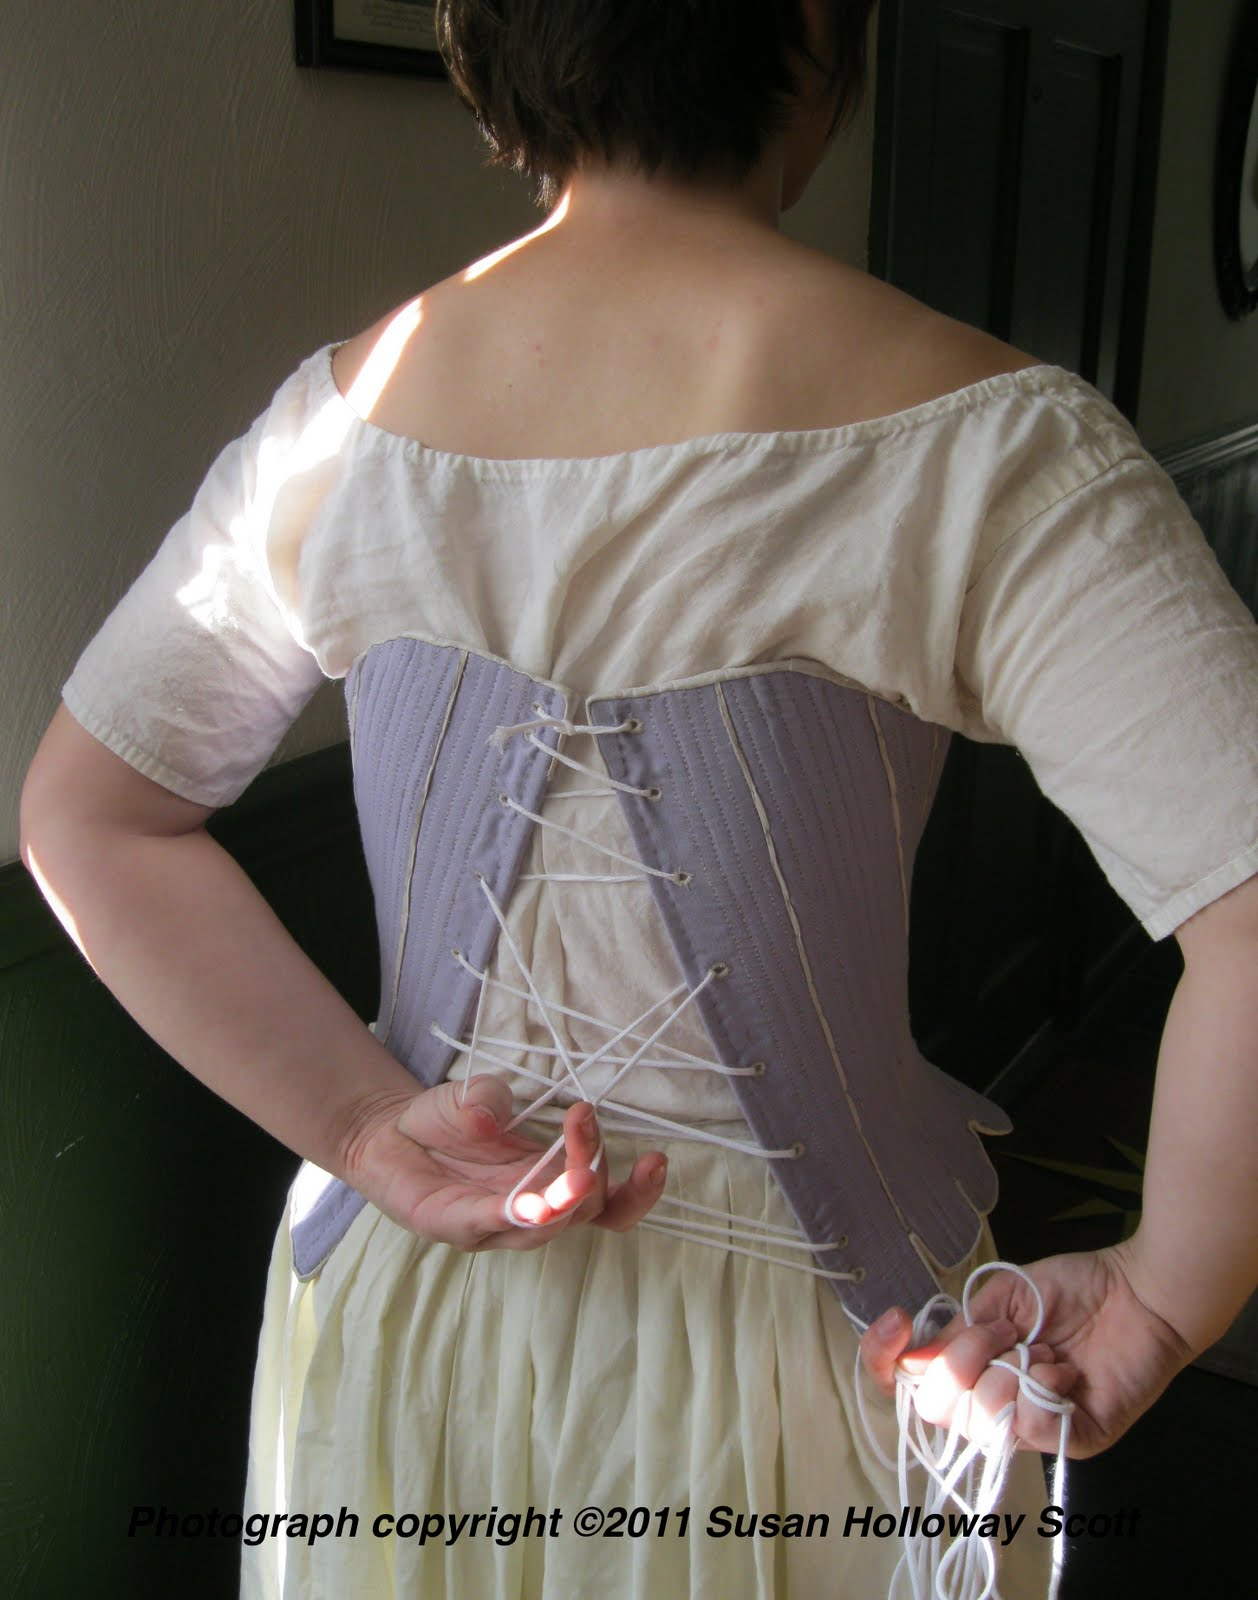 221822714c0 Two Nerdy History Girls  How to Lace Your Stays by Yourself